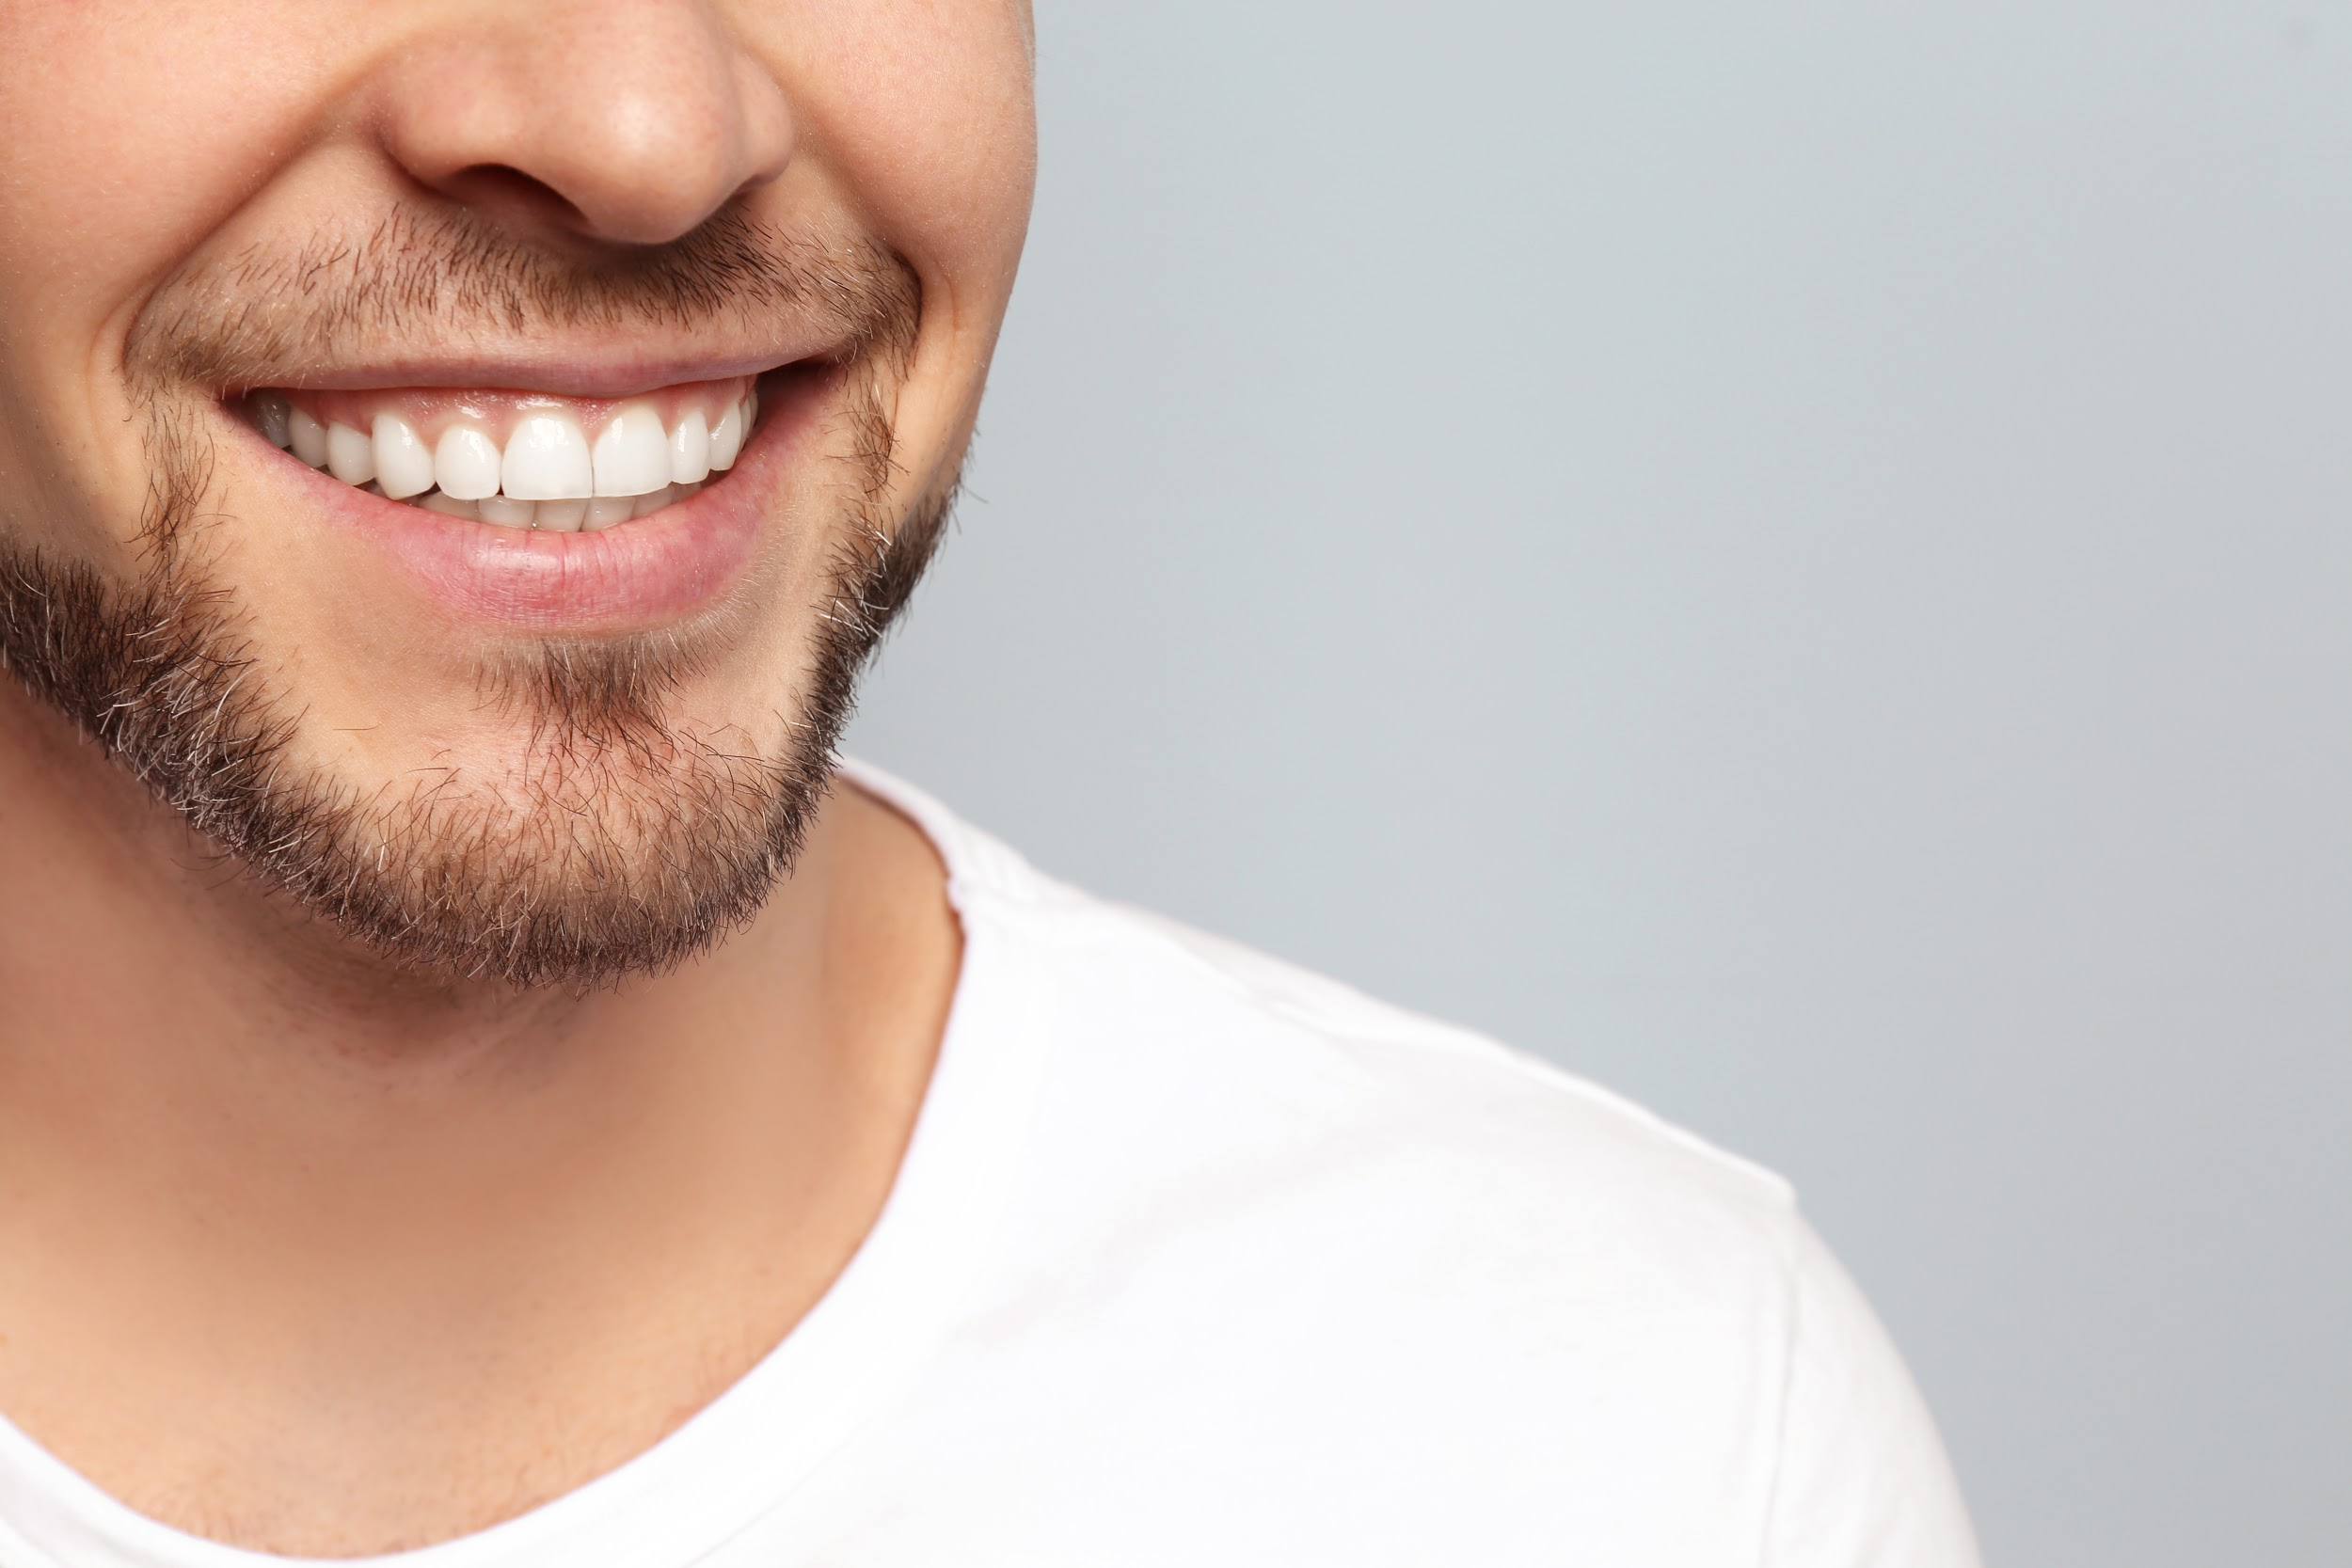 Man with straight teeth after using ClearCorrect aligners shows off his smile